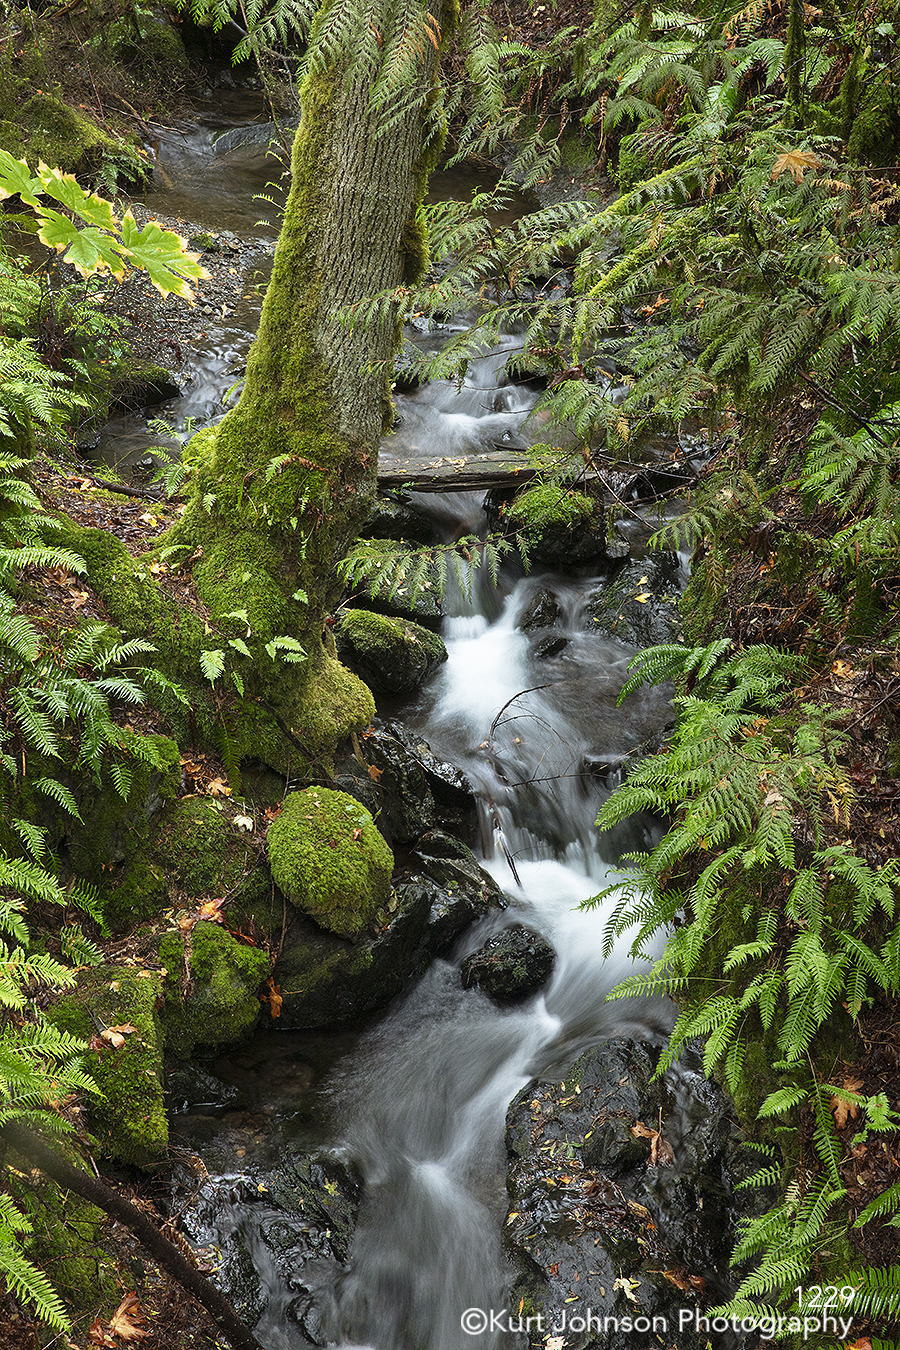 green forest running water waterfall trees leaves rocks stones moss waterscape landscape pacific northwest